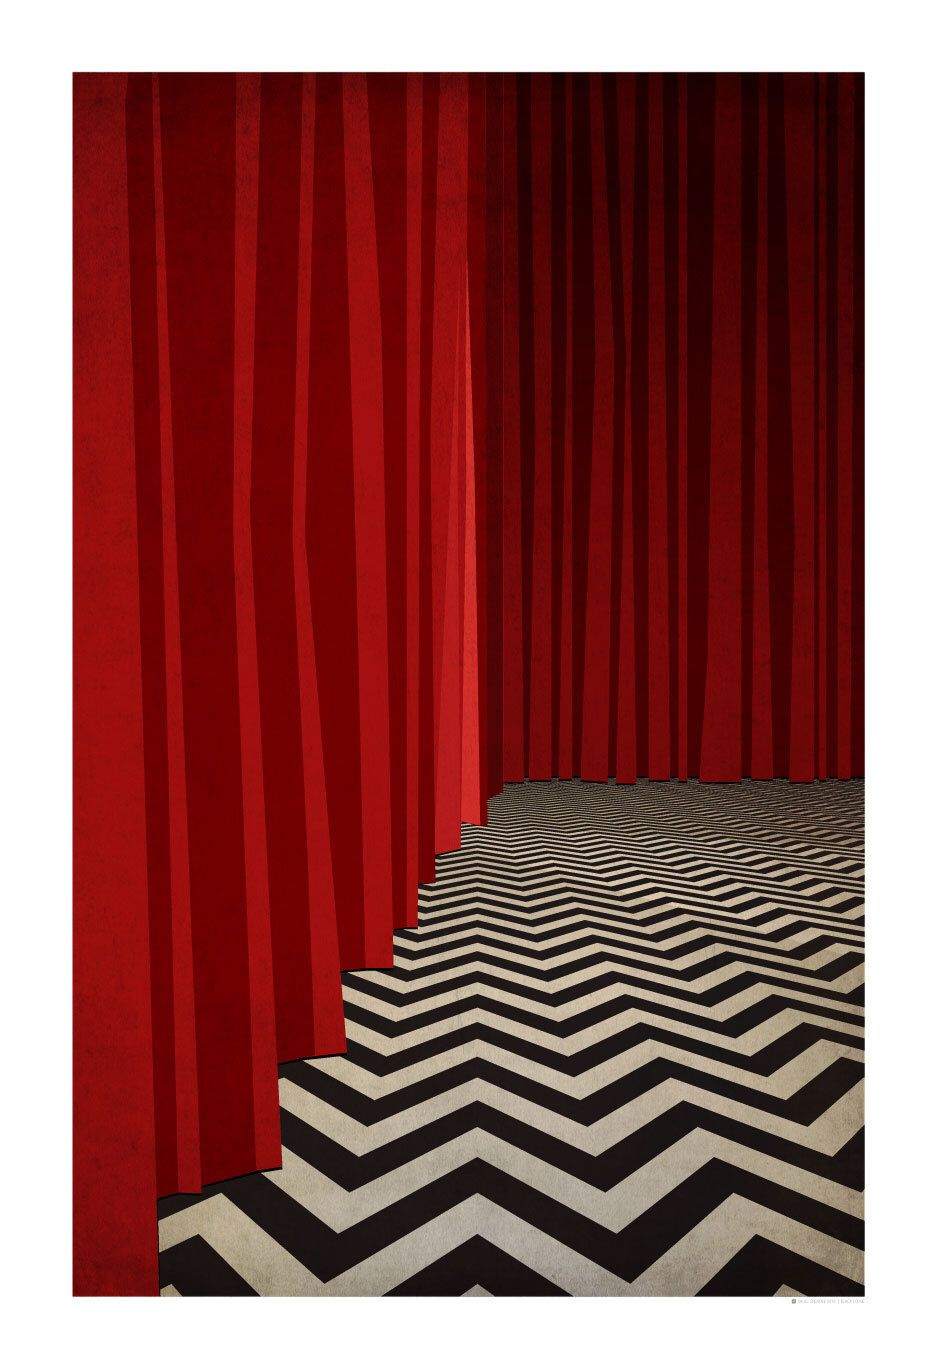 Twin Peaks Poster Red Room Black Lodge Poster 13x19 Black Lodge Red Rooms Twin Peaks Poster